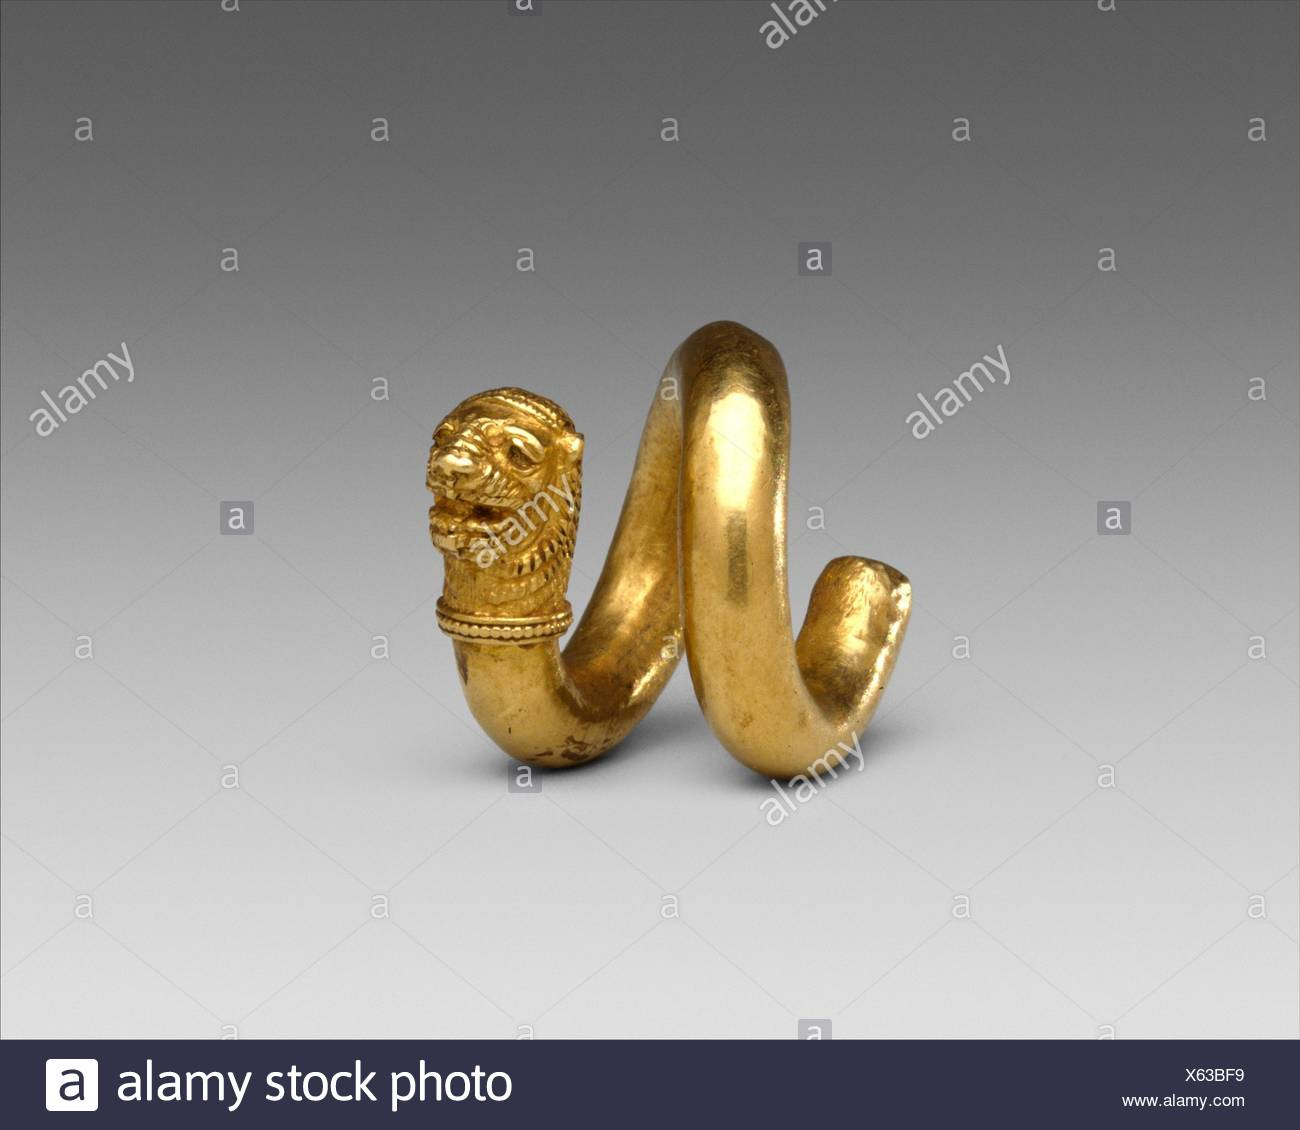 Gold and copper alloy spiral with lion-head terminal. Period: Classical; Date: 2nd half of the 5th century B.C; Culture: Cypriot; Medium: Gold, - Stock Image